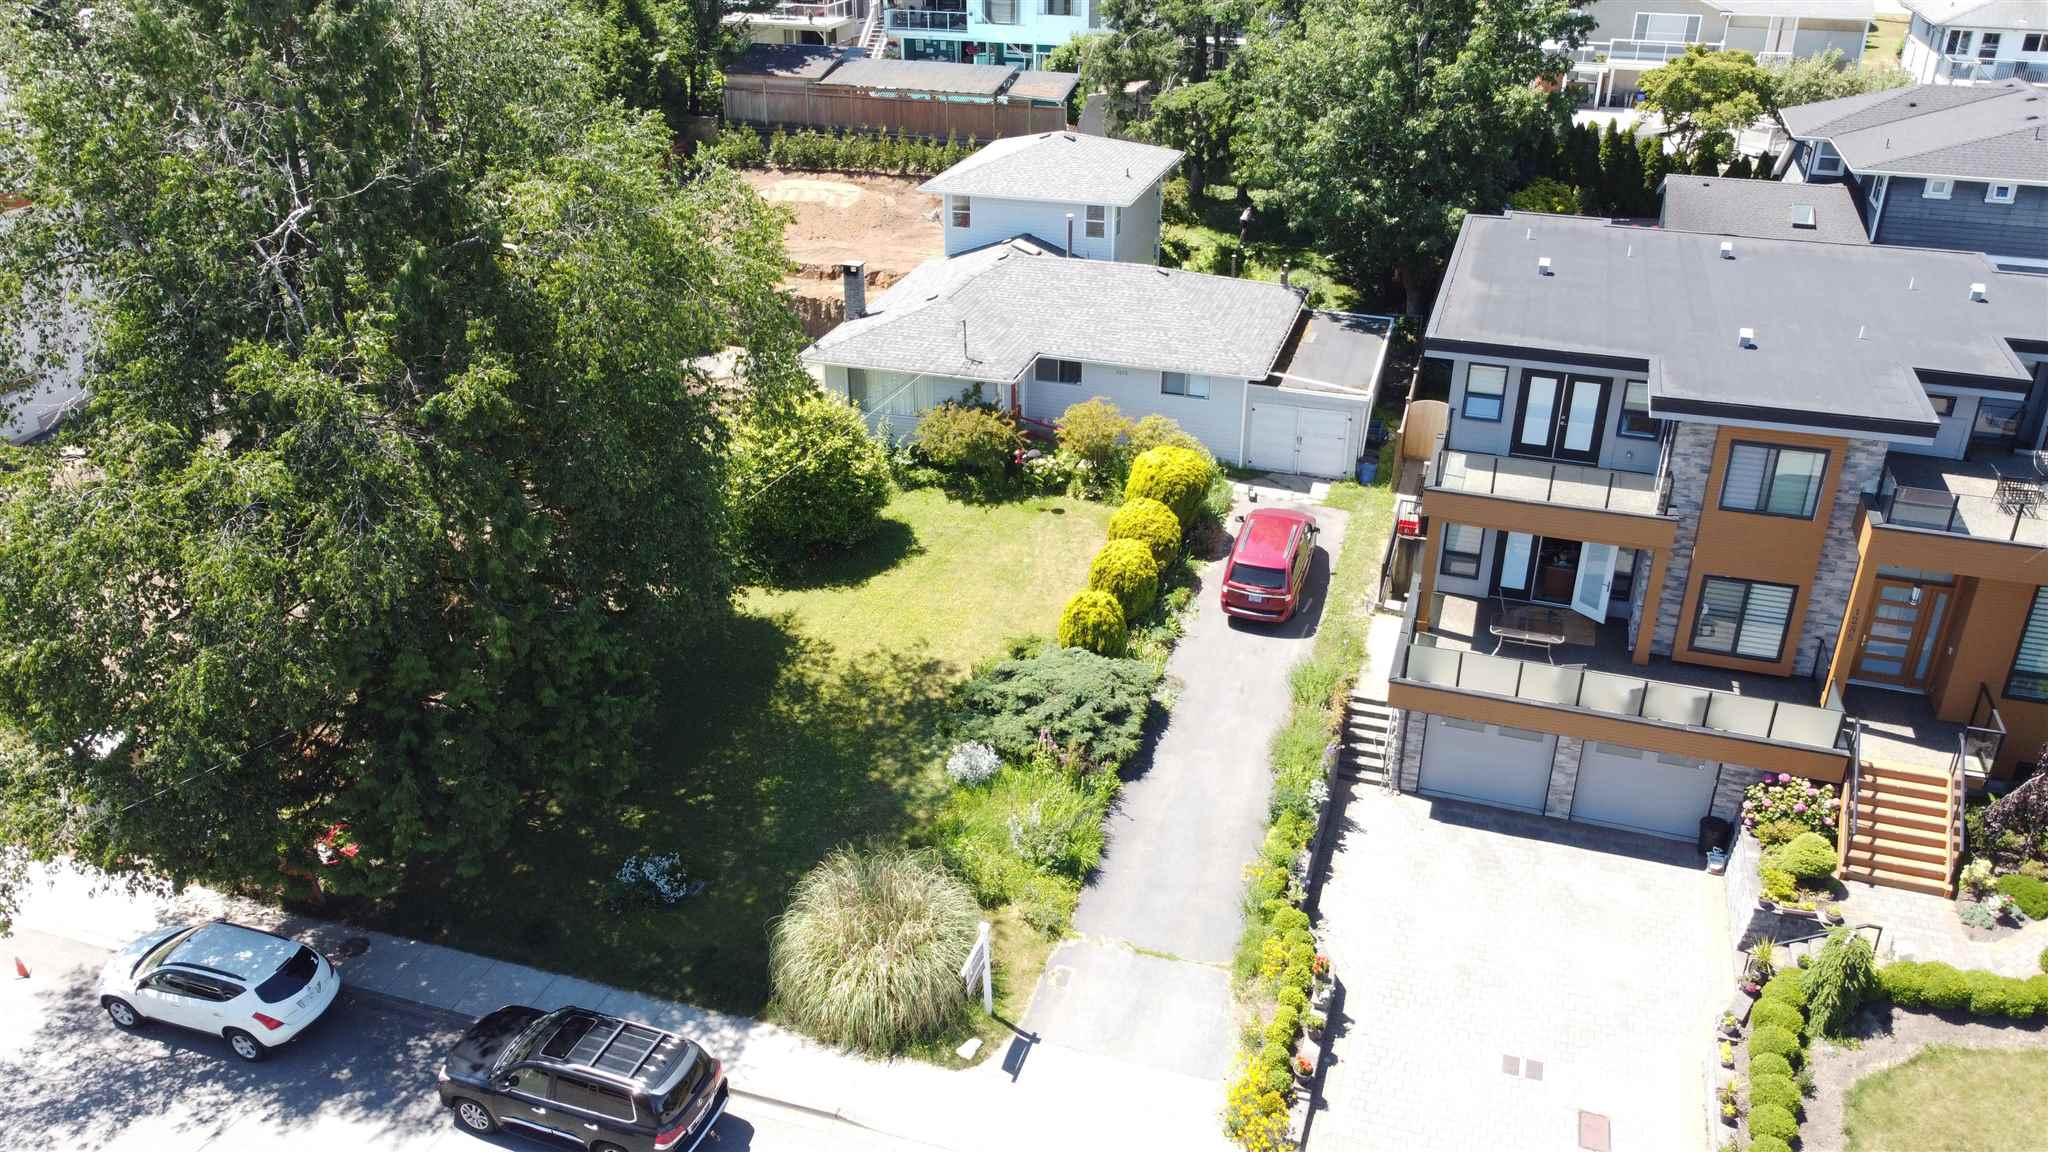 1275 KENT STREET - White Rock House/Single Family for sale, 4 Bedrooms (R2575494) - #1